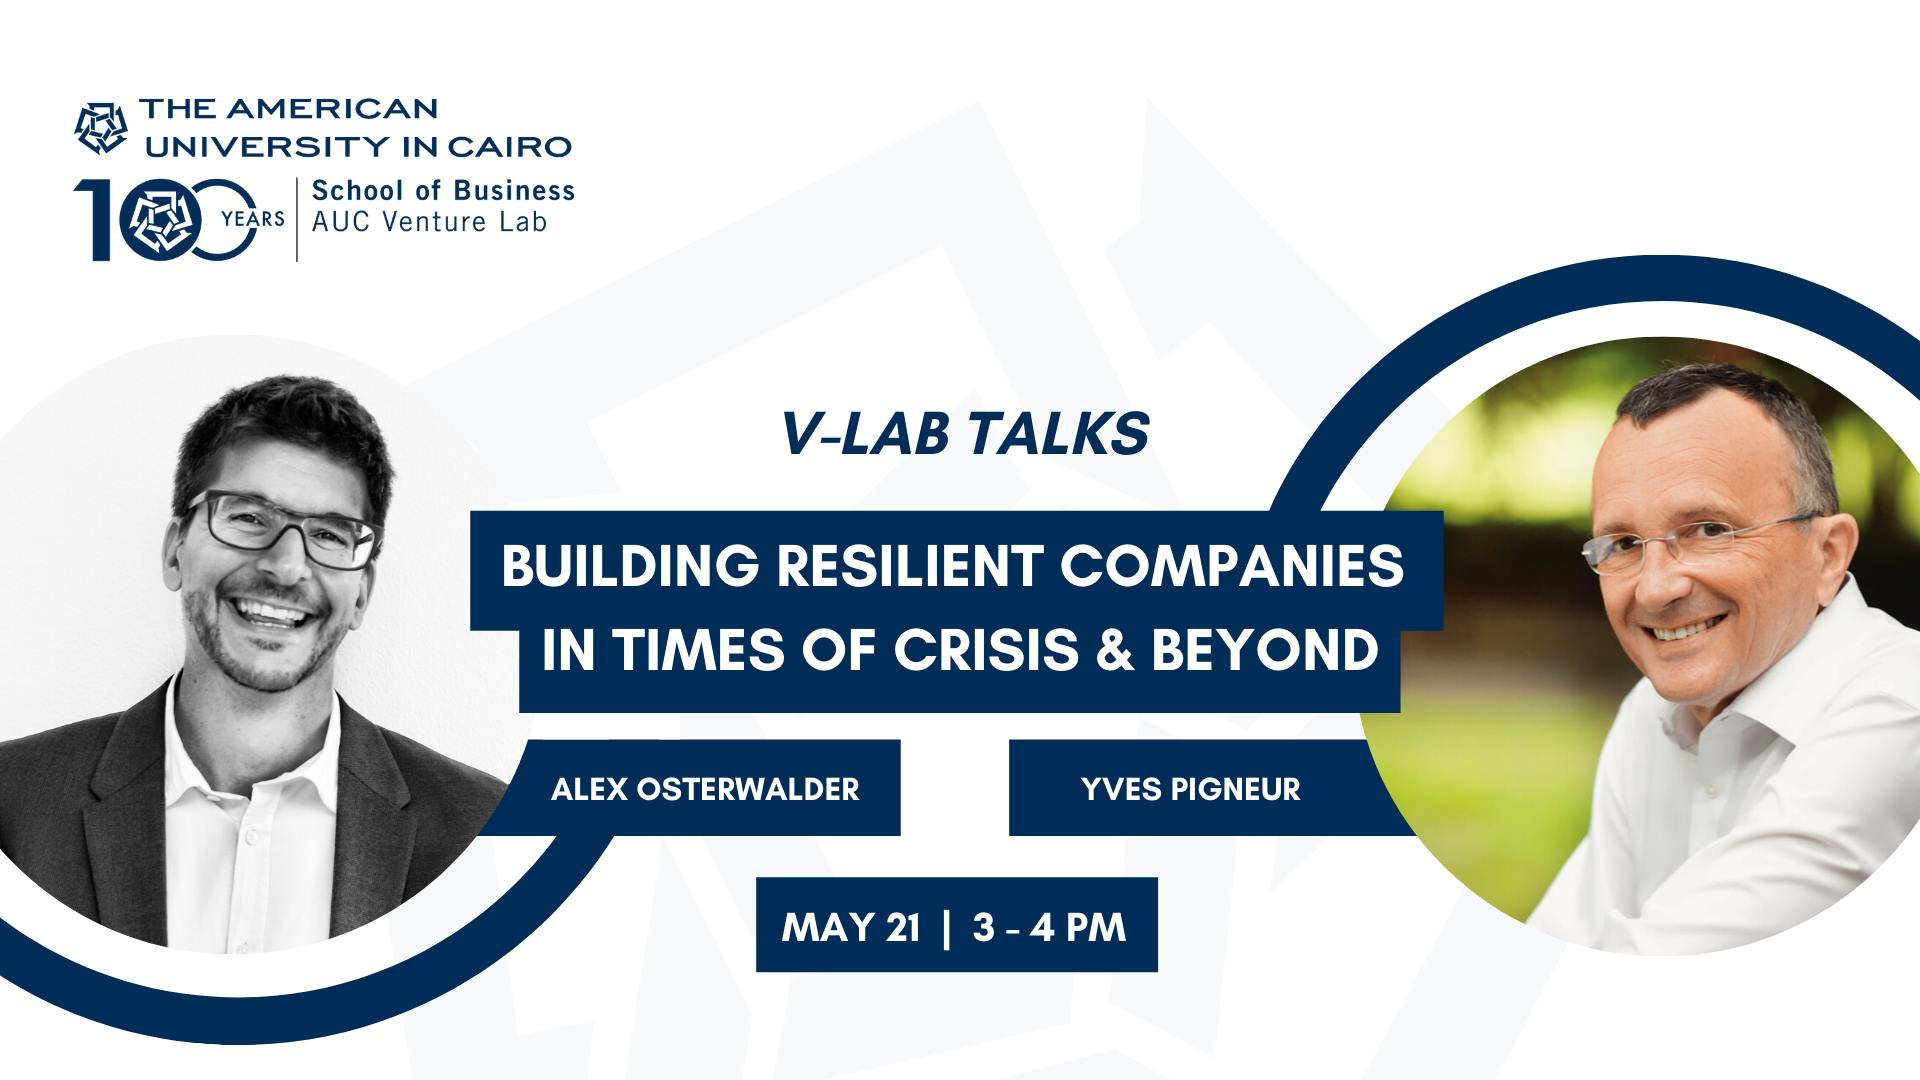 V-Lab Talks: Building Resilient Companies in Crisis & Beyond